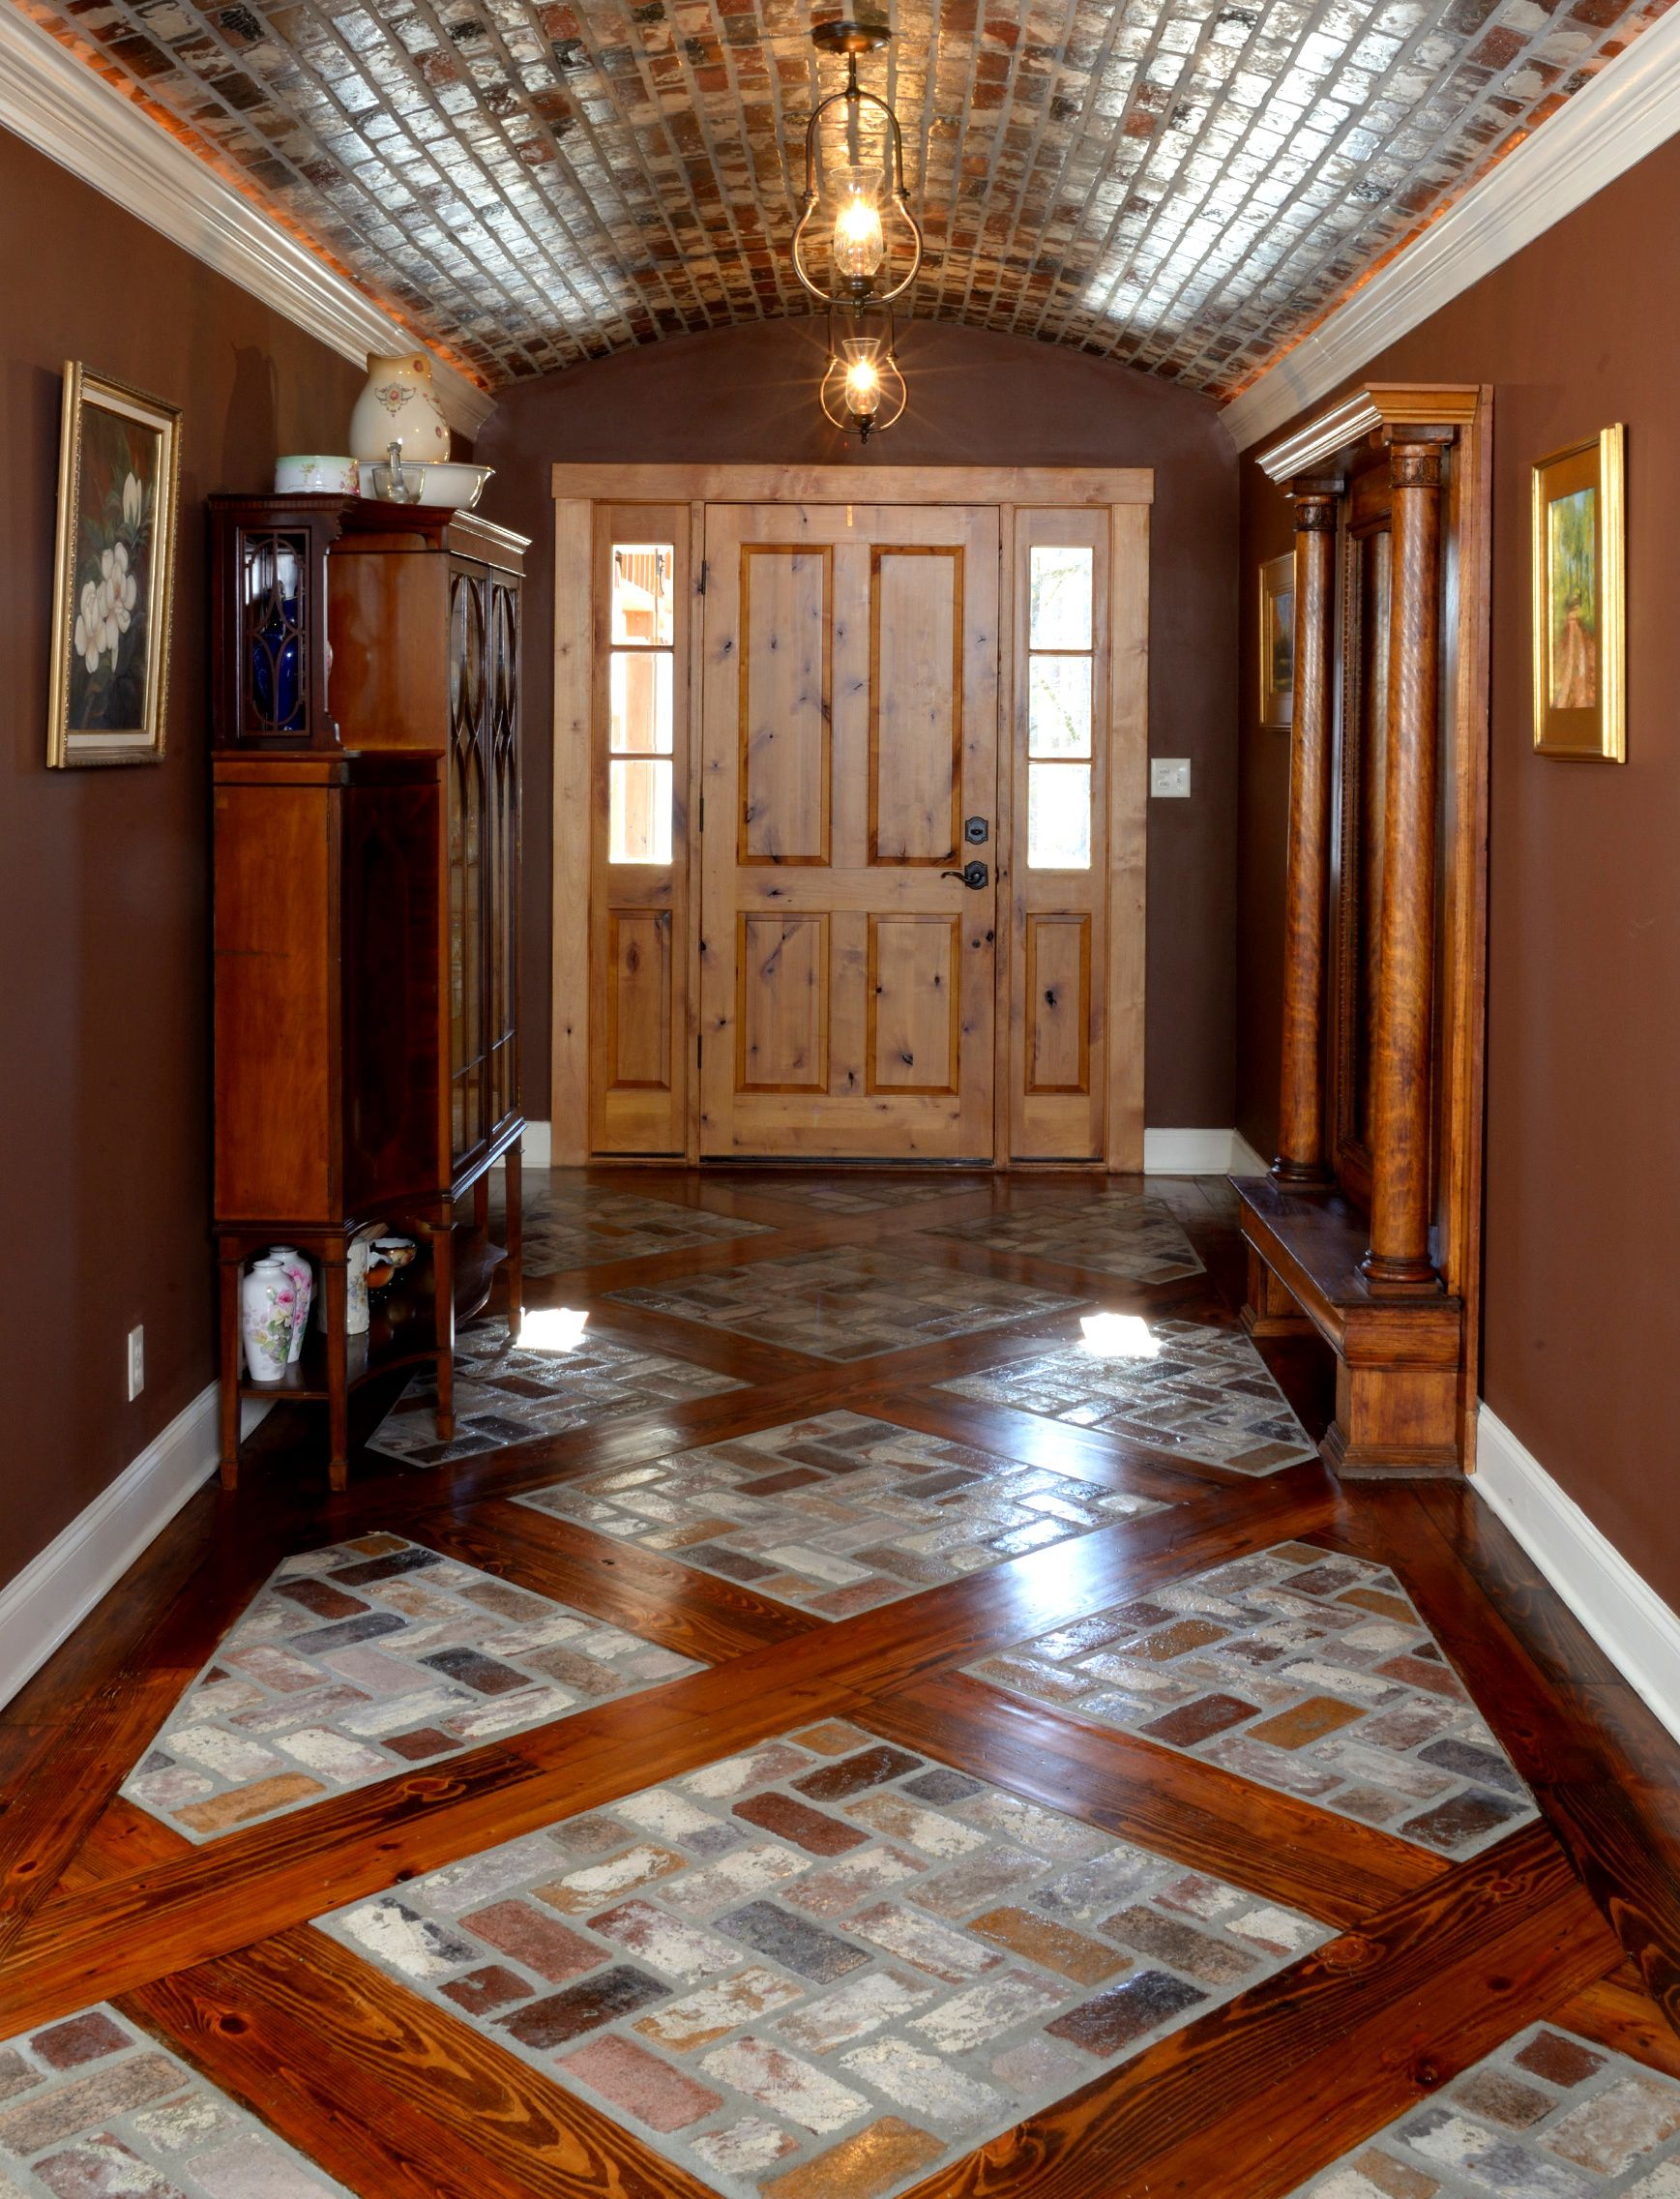 Unique Ceiling Design With Portstone Thin Brick Rose Hill Color And Wood Inlay Floor With Portstone Thin In 2020 Pretty House Home Interior Design Small House Storage